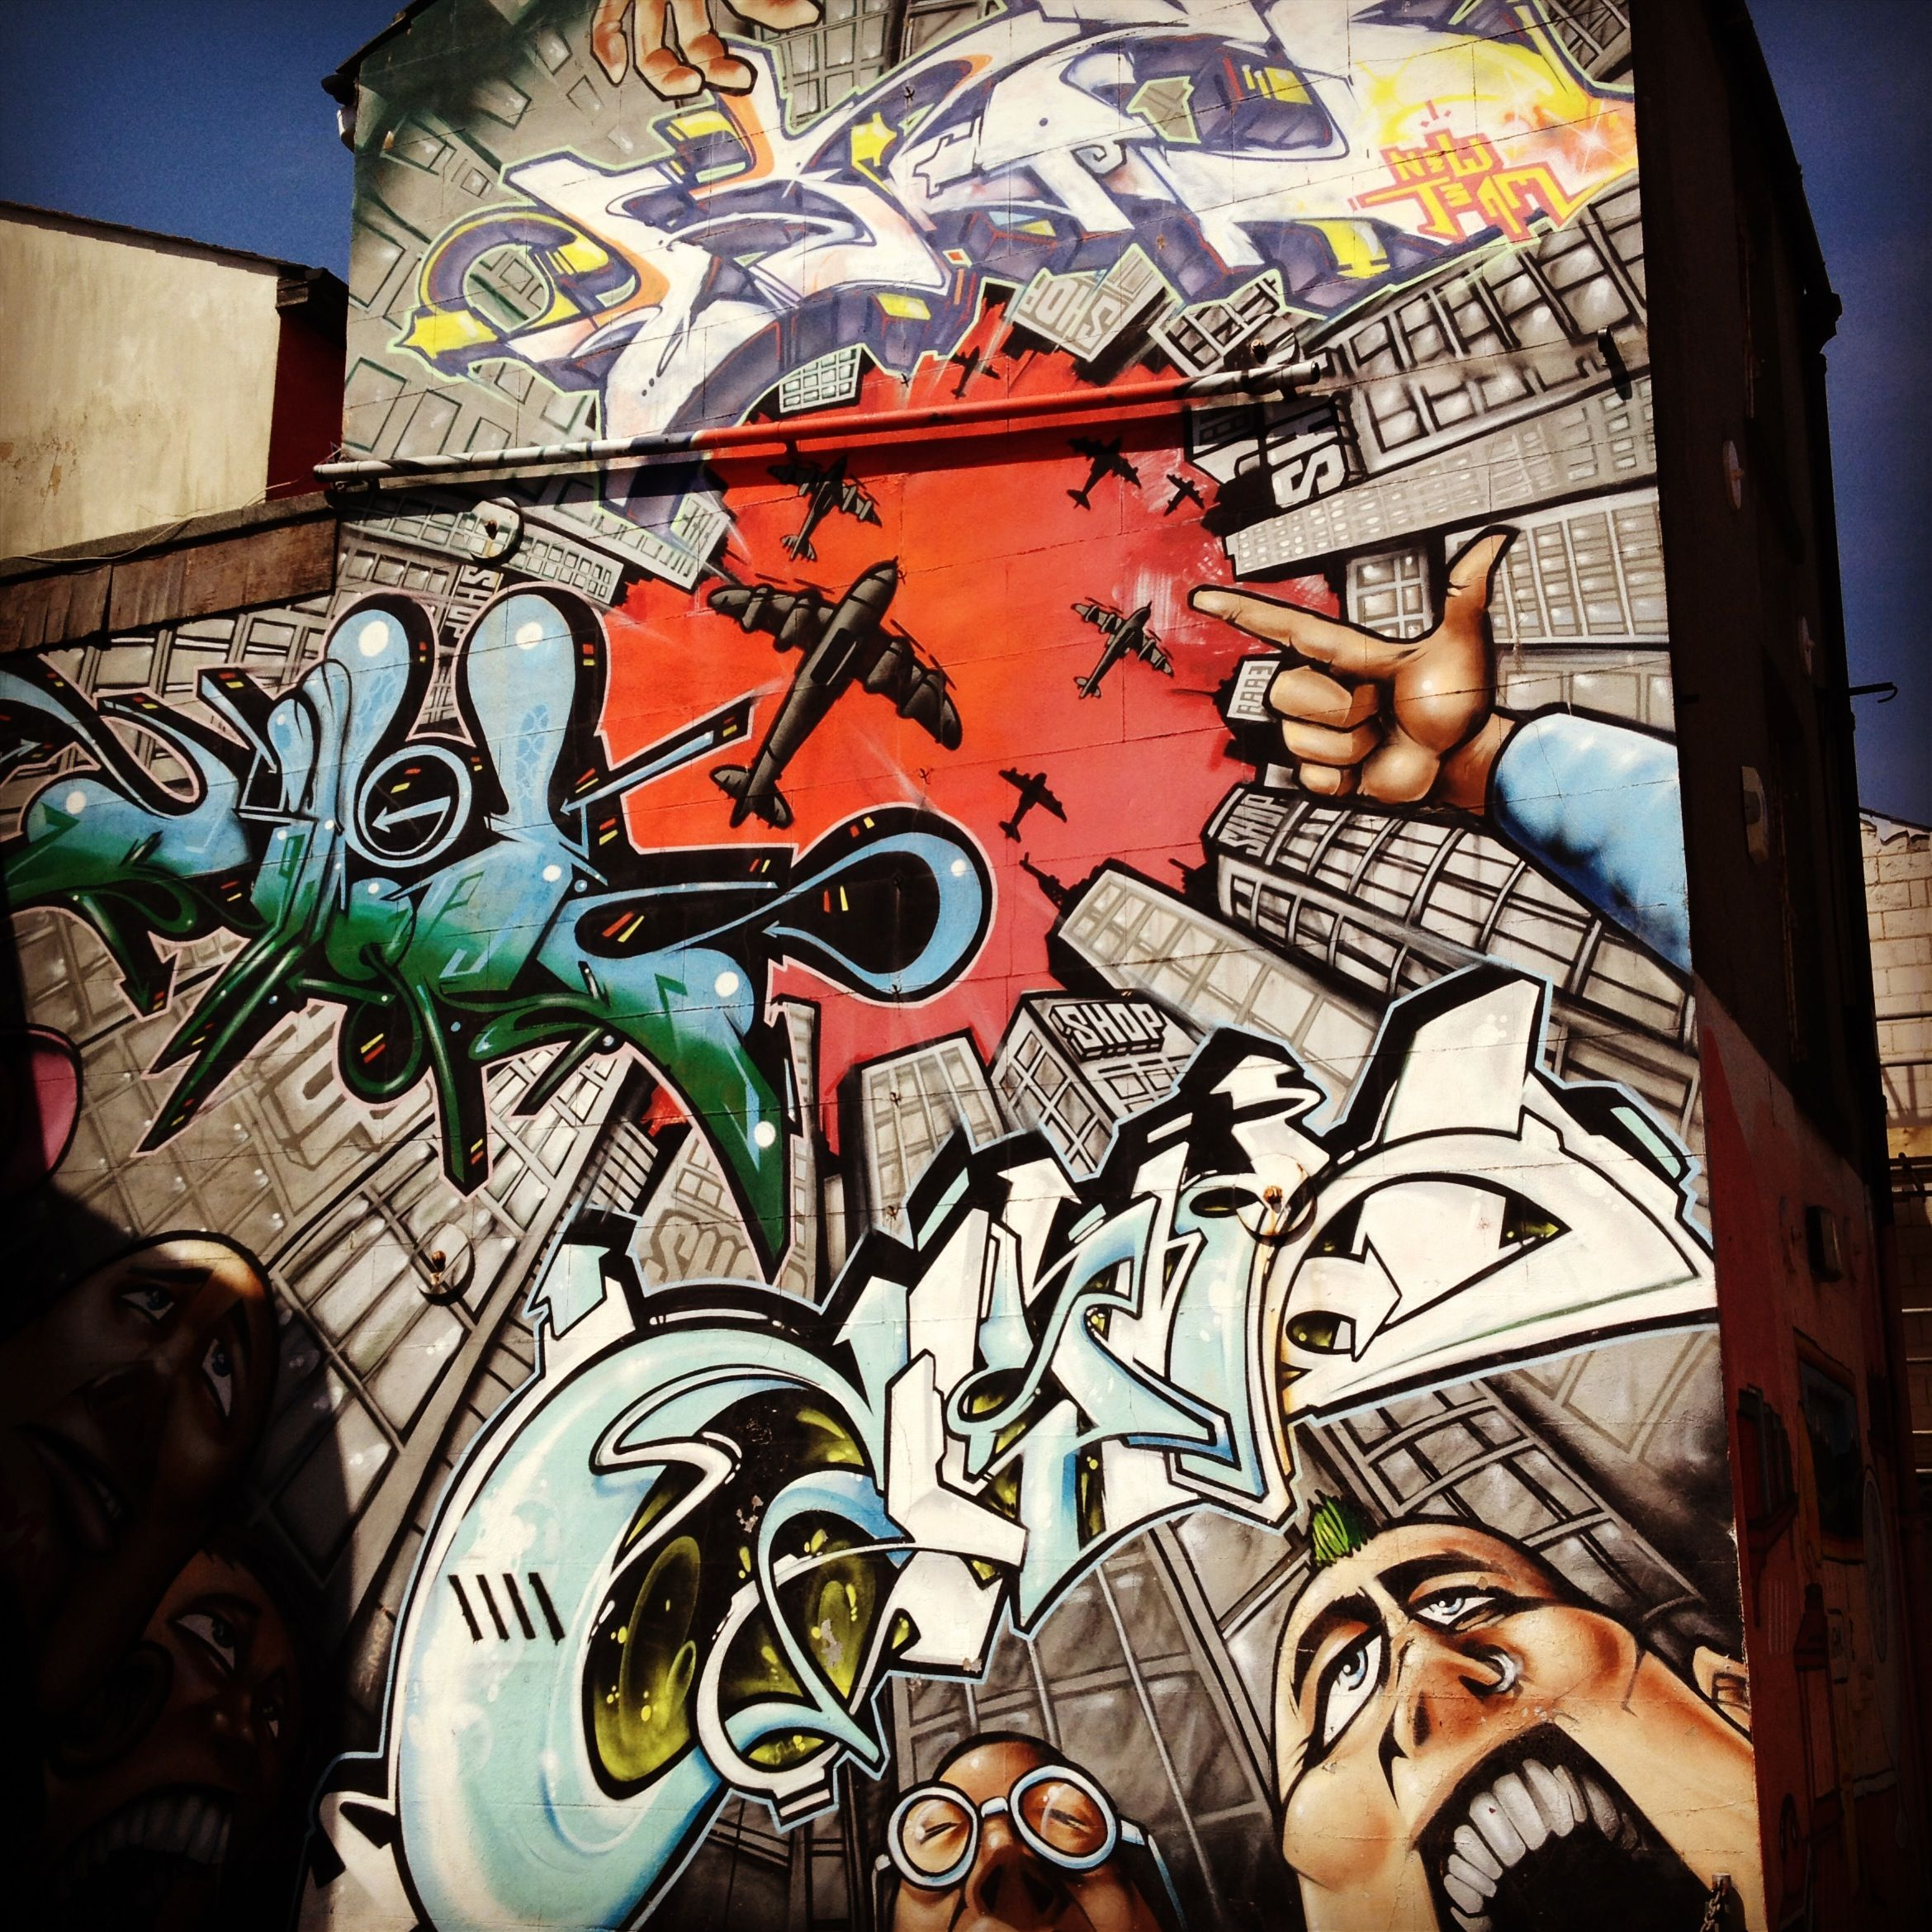 Brighton quality graffiti pinterest brighton and graffiti